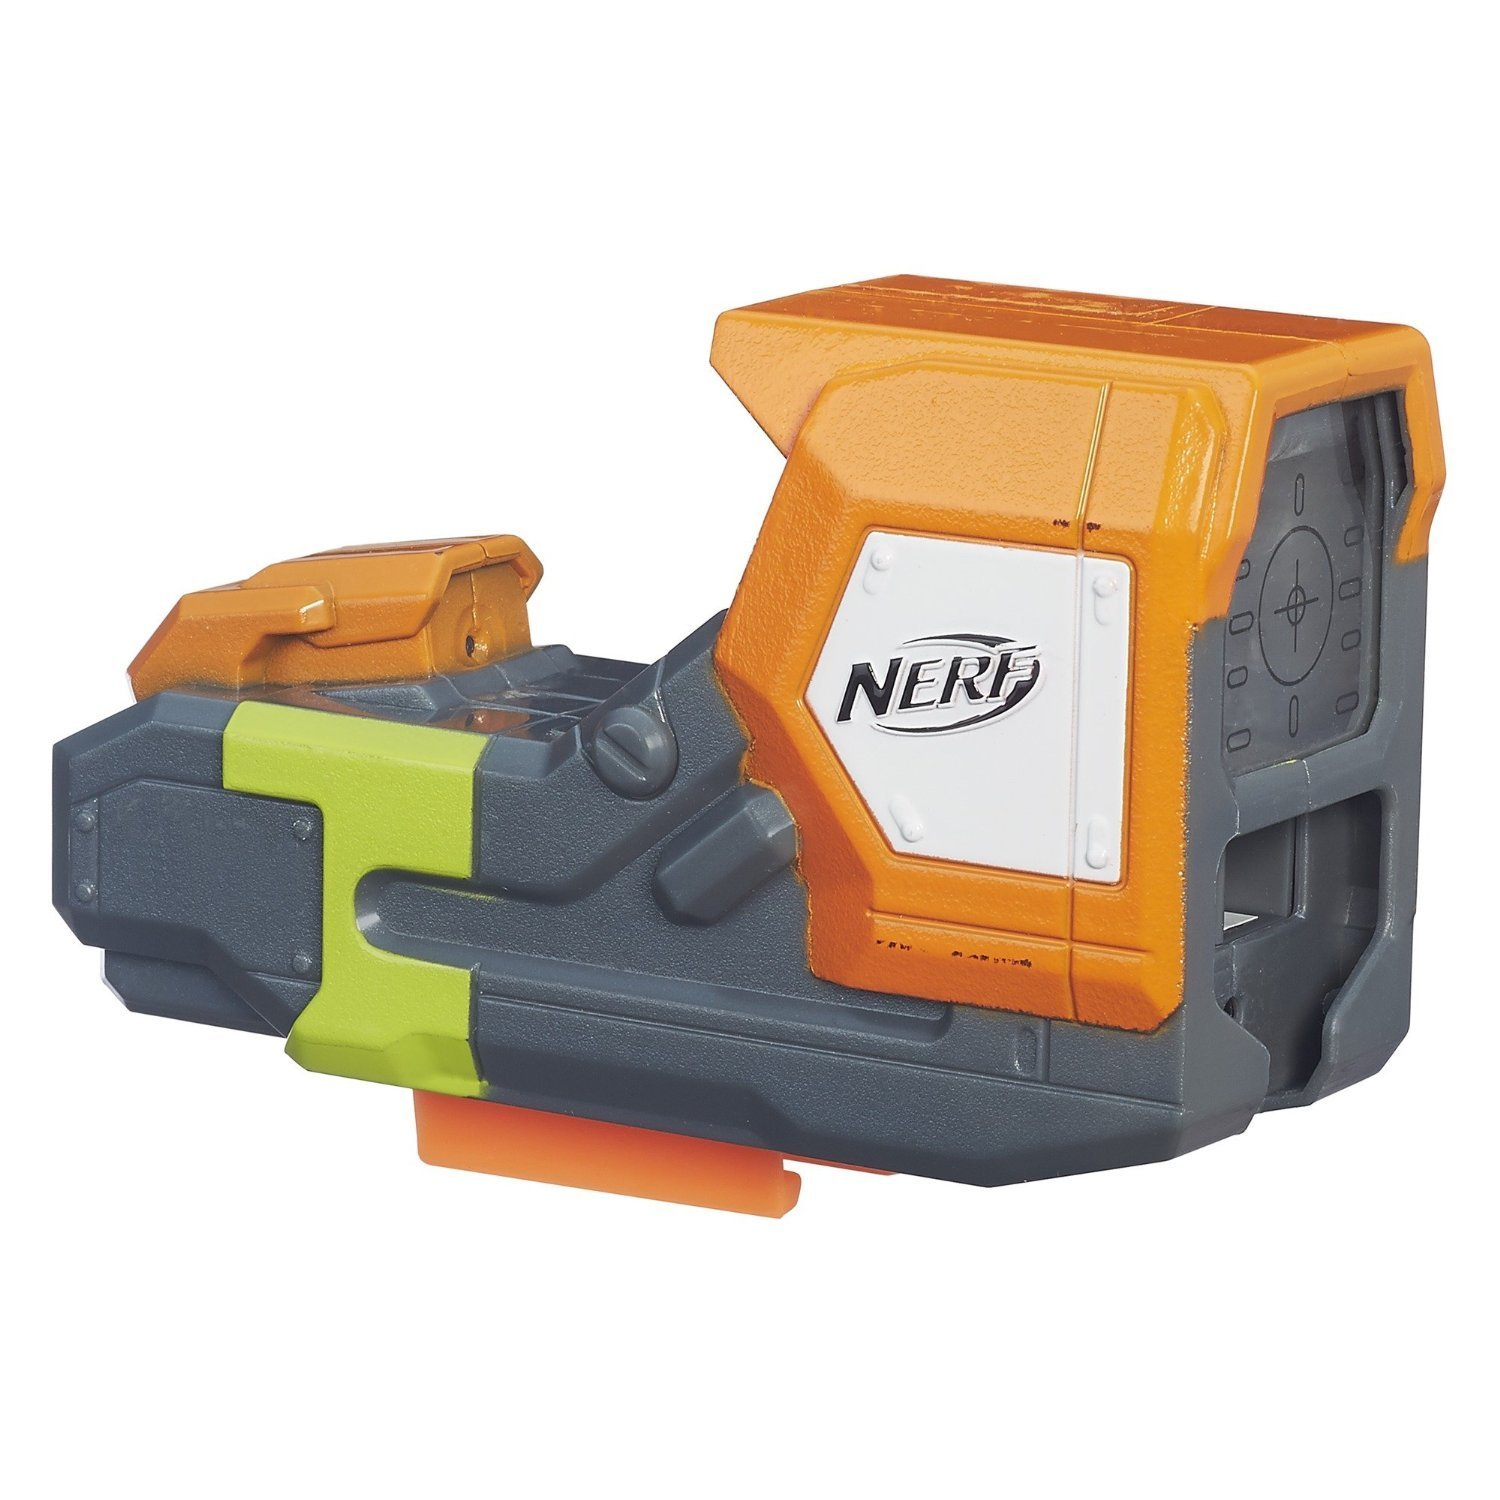 Modulus Blaster Red Dot Sight, Customize your Nerf Modulus blaster (sold separately) By... by